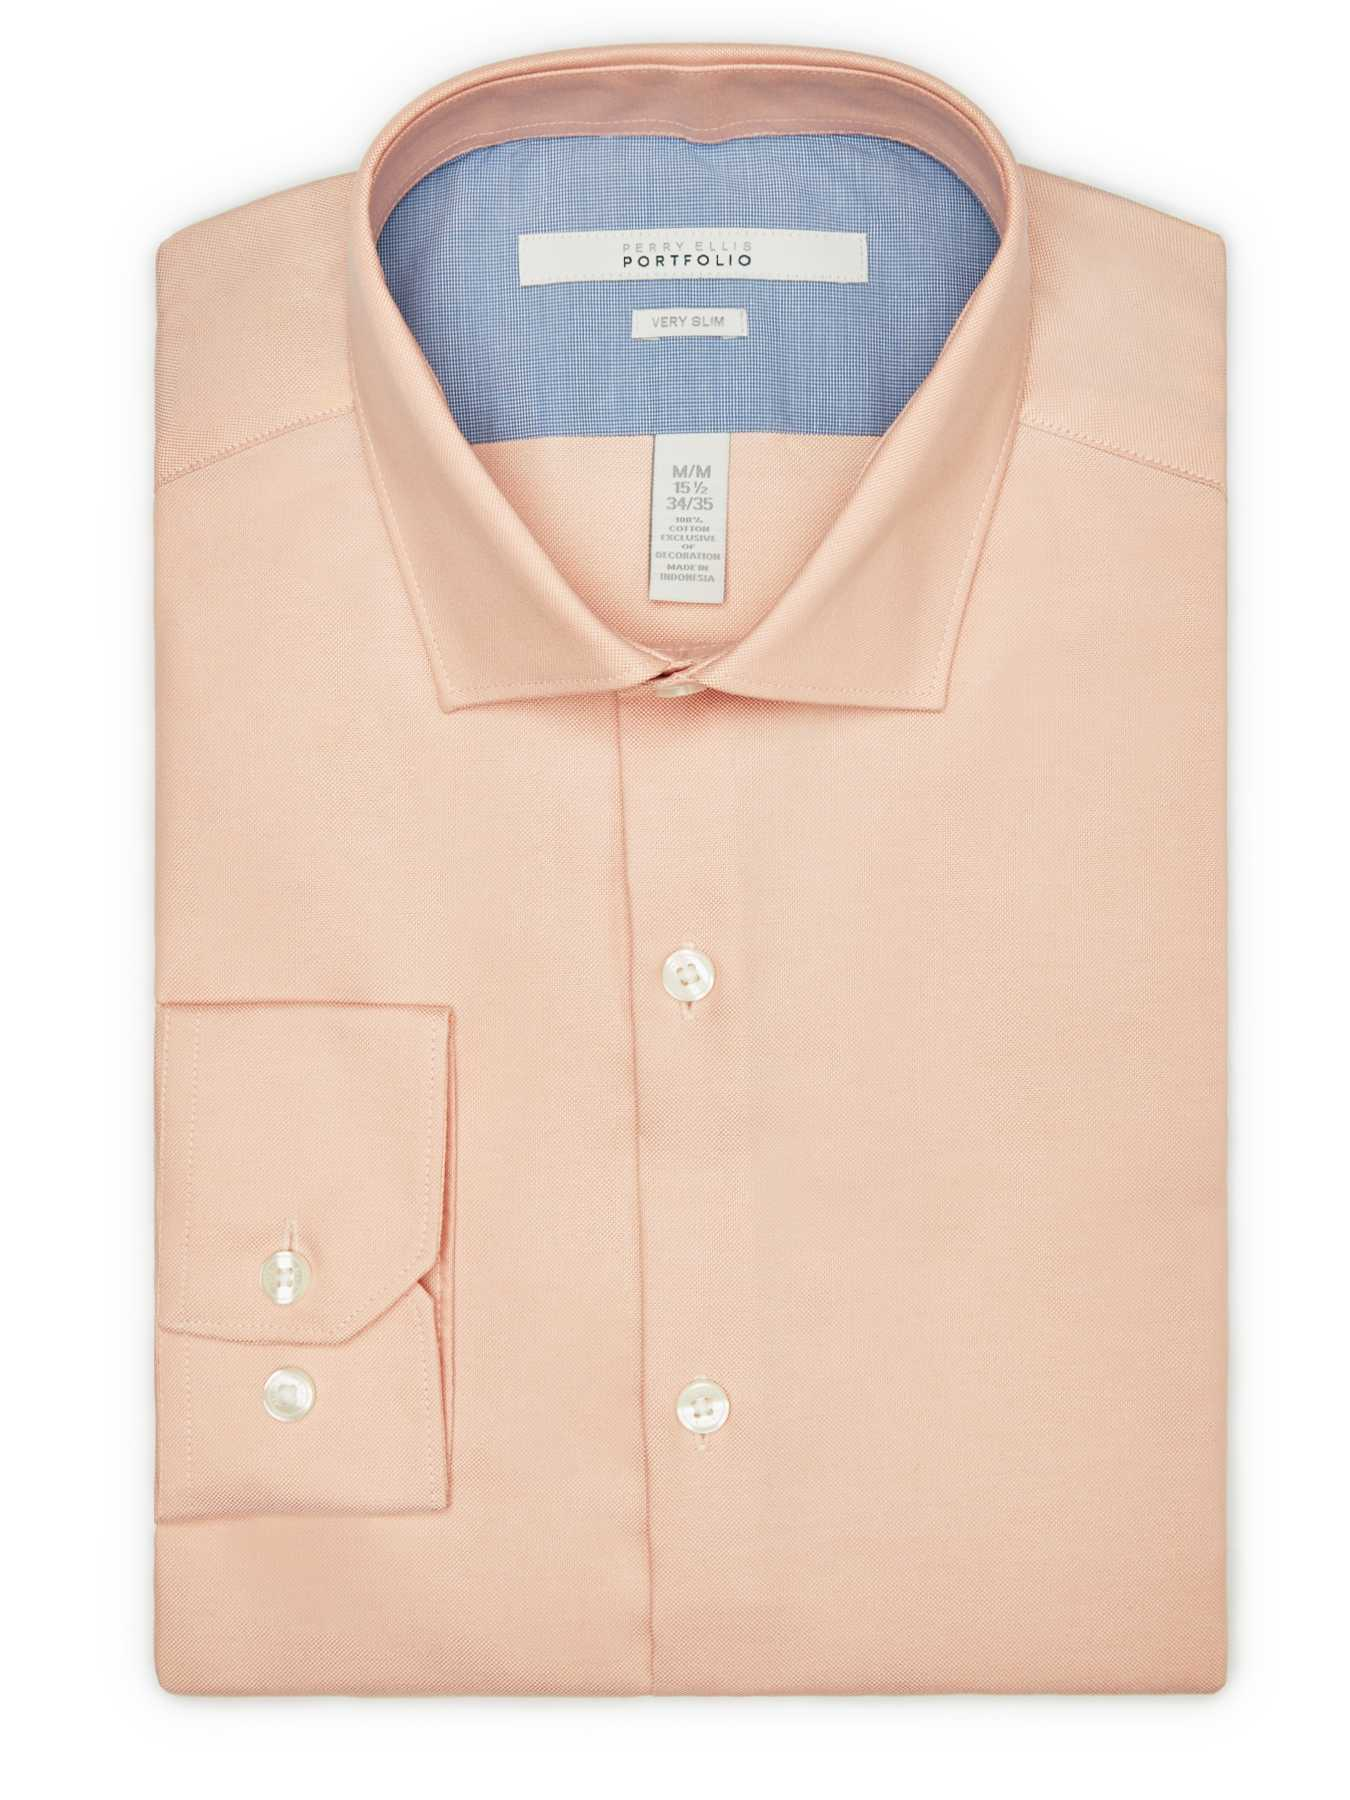 Perry Ellis Very Slim Solid Oxford Dress Shirt